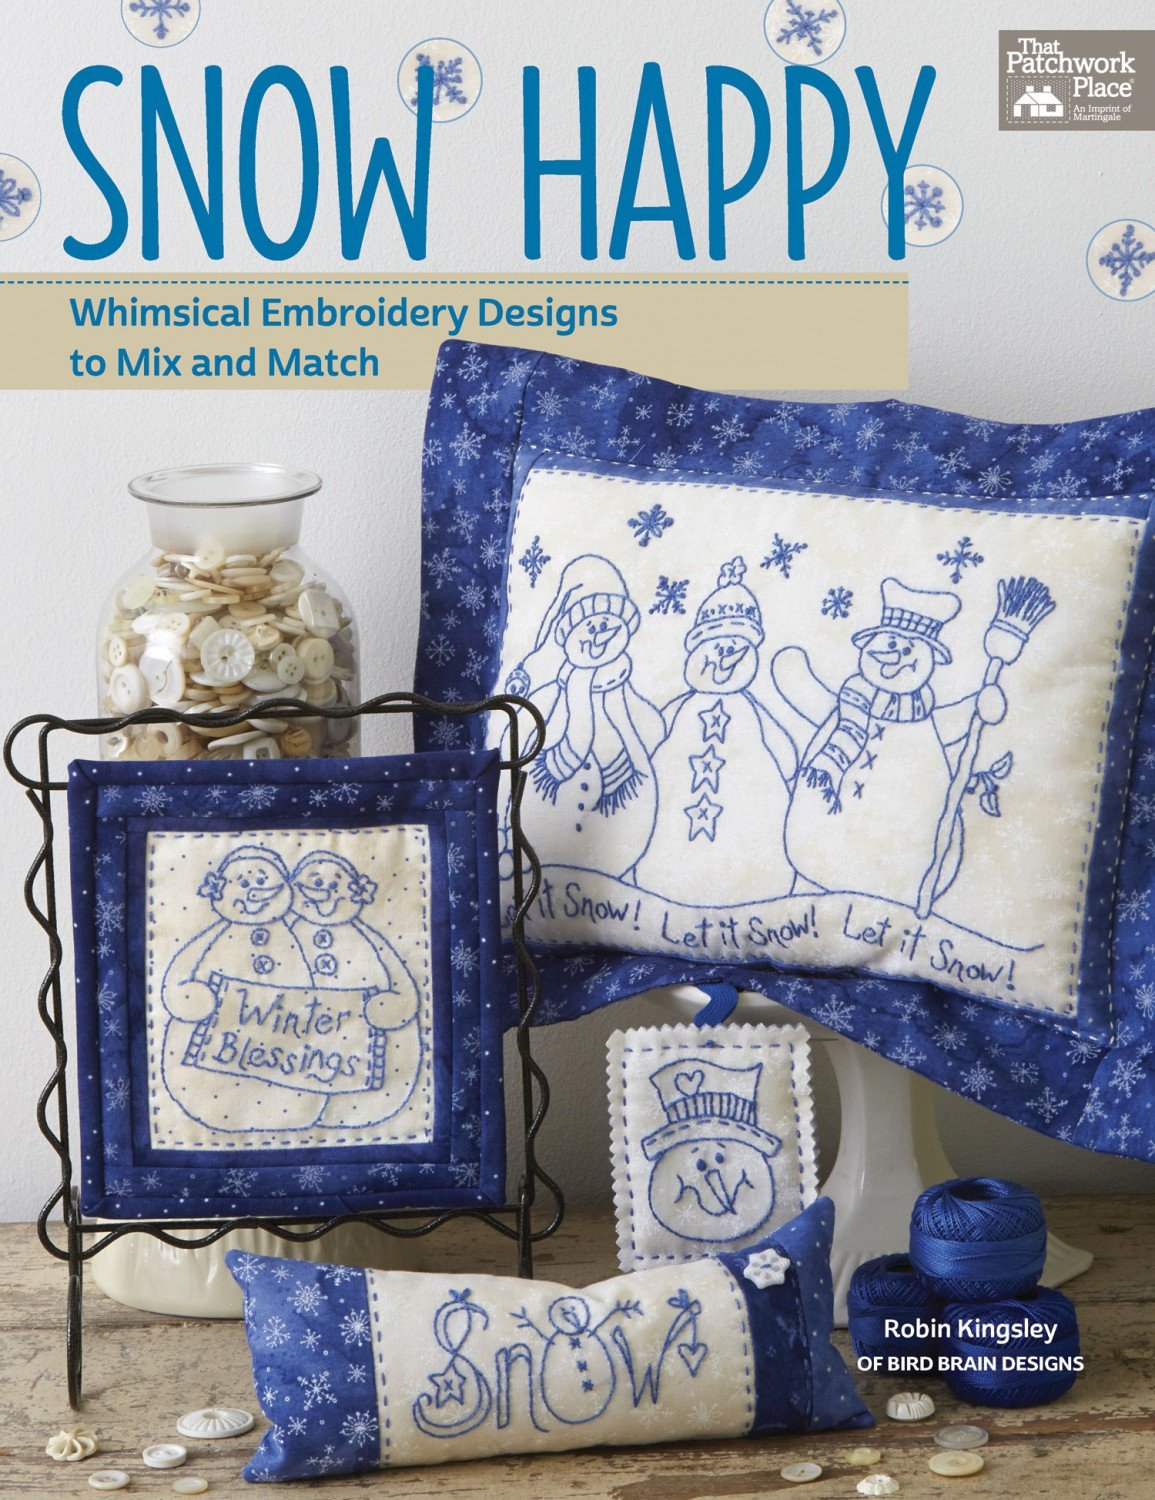 Snow Happy from The Patchwork Place by Robin Kingsley